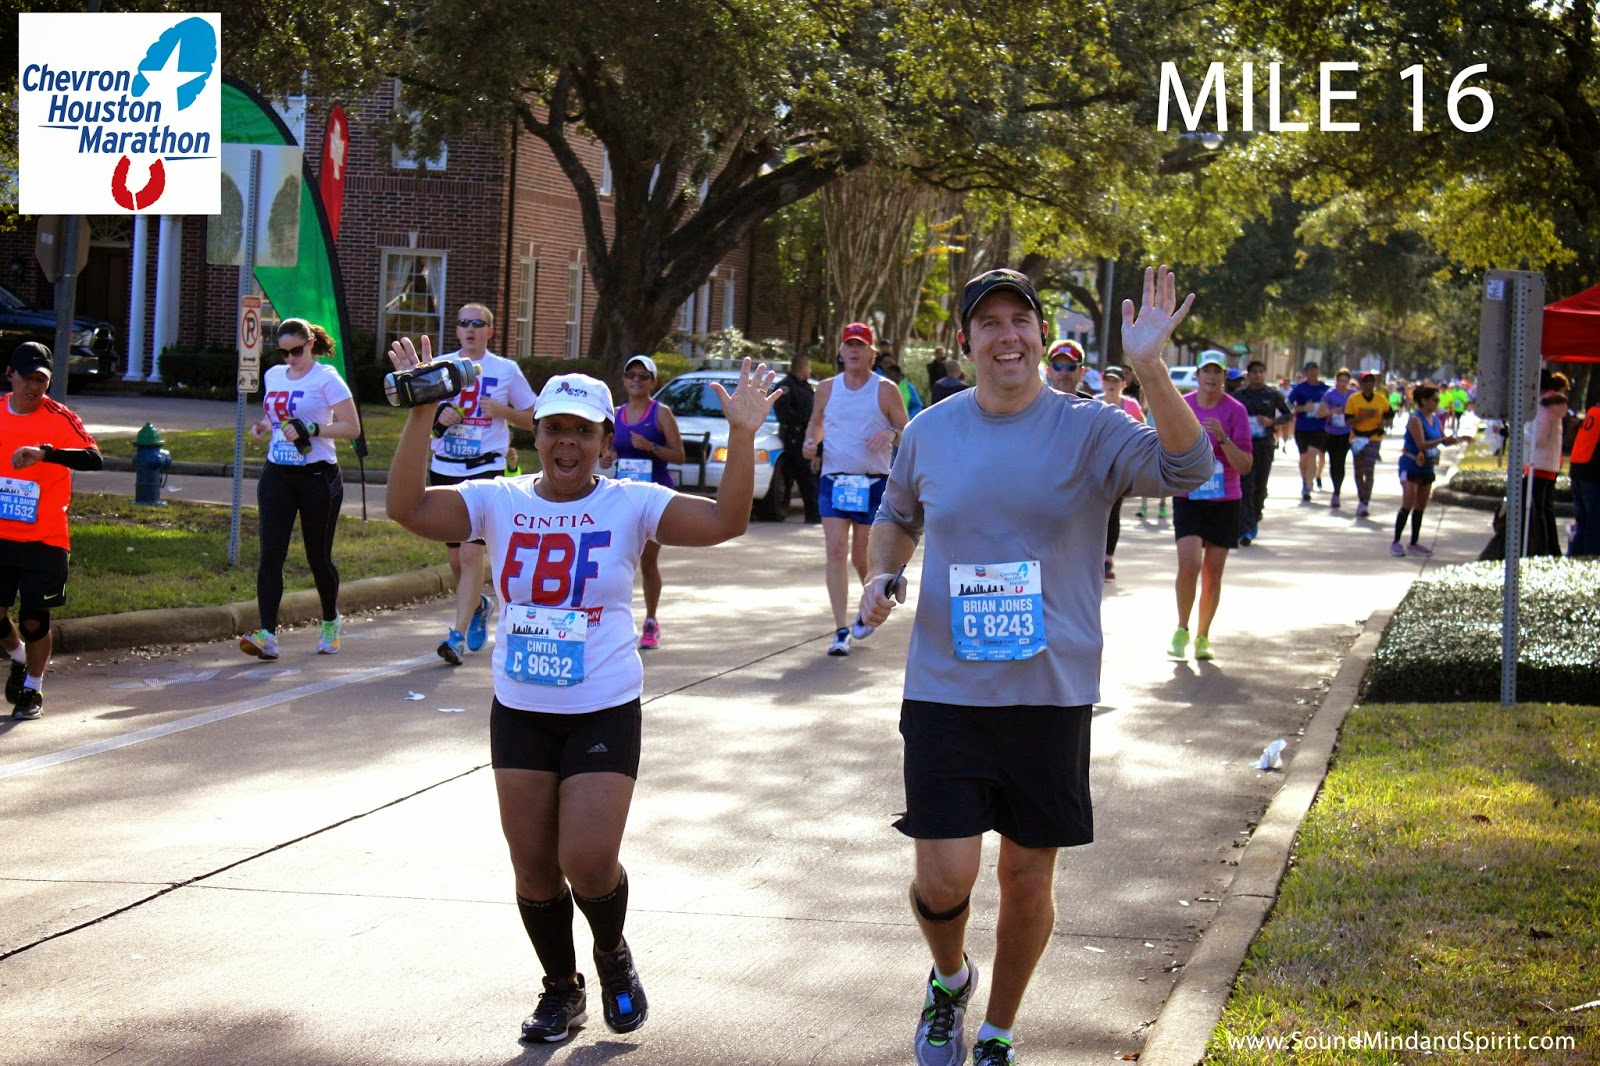 Smiles at Mile 16 with Simply Cintia -  A Chevron Houston Marathon Review